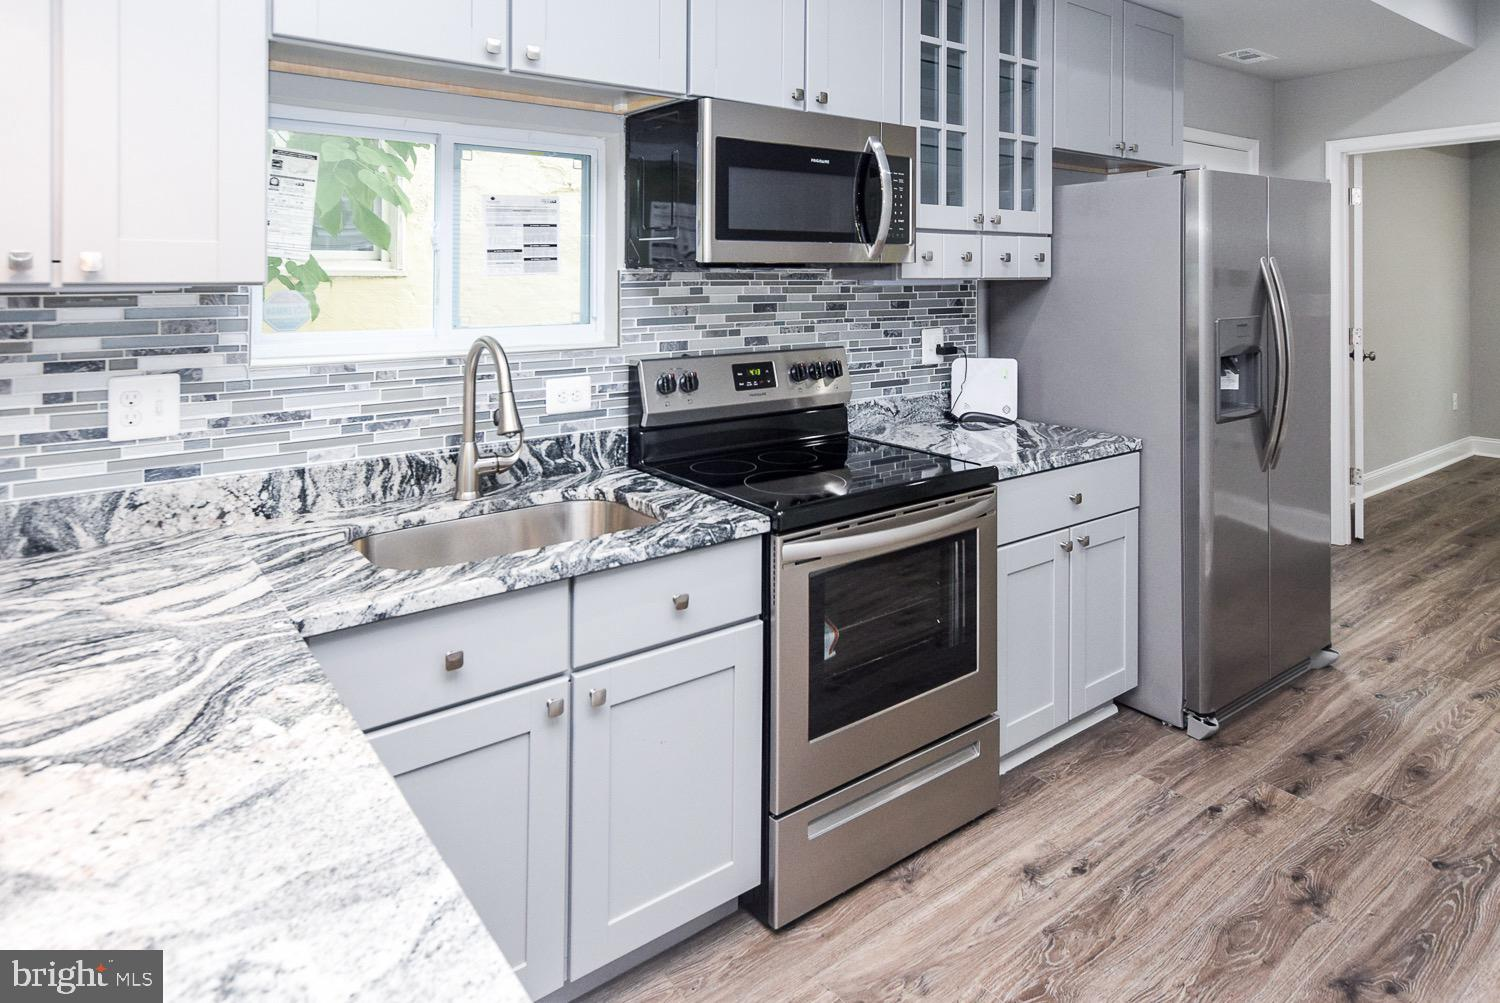 Brand New Renovation -Amazing Open Floor Plan -4 Bedrooms and 3 Full Bathrooms. Fully Renovated with